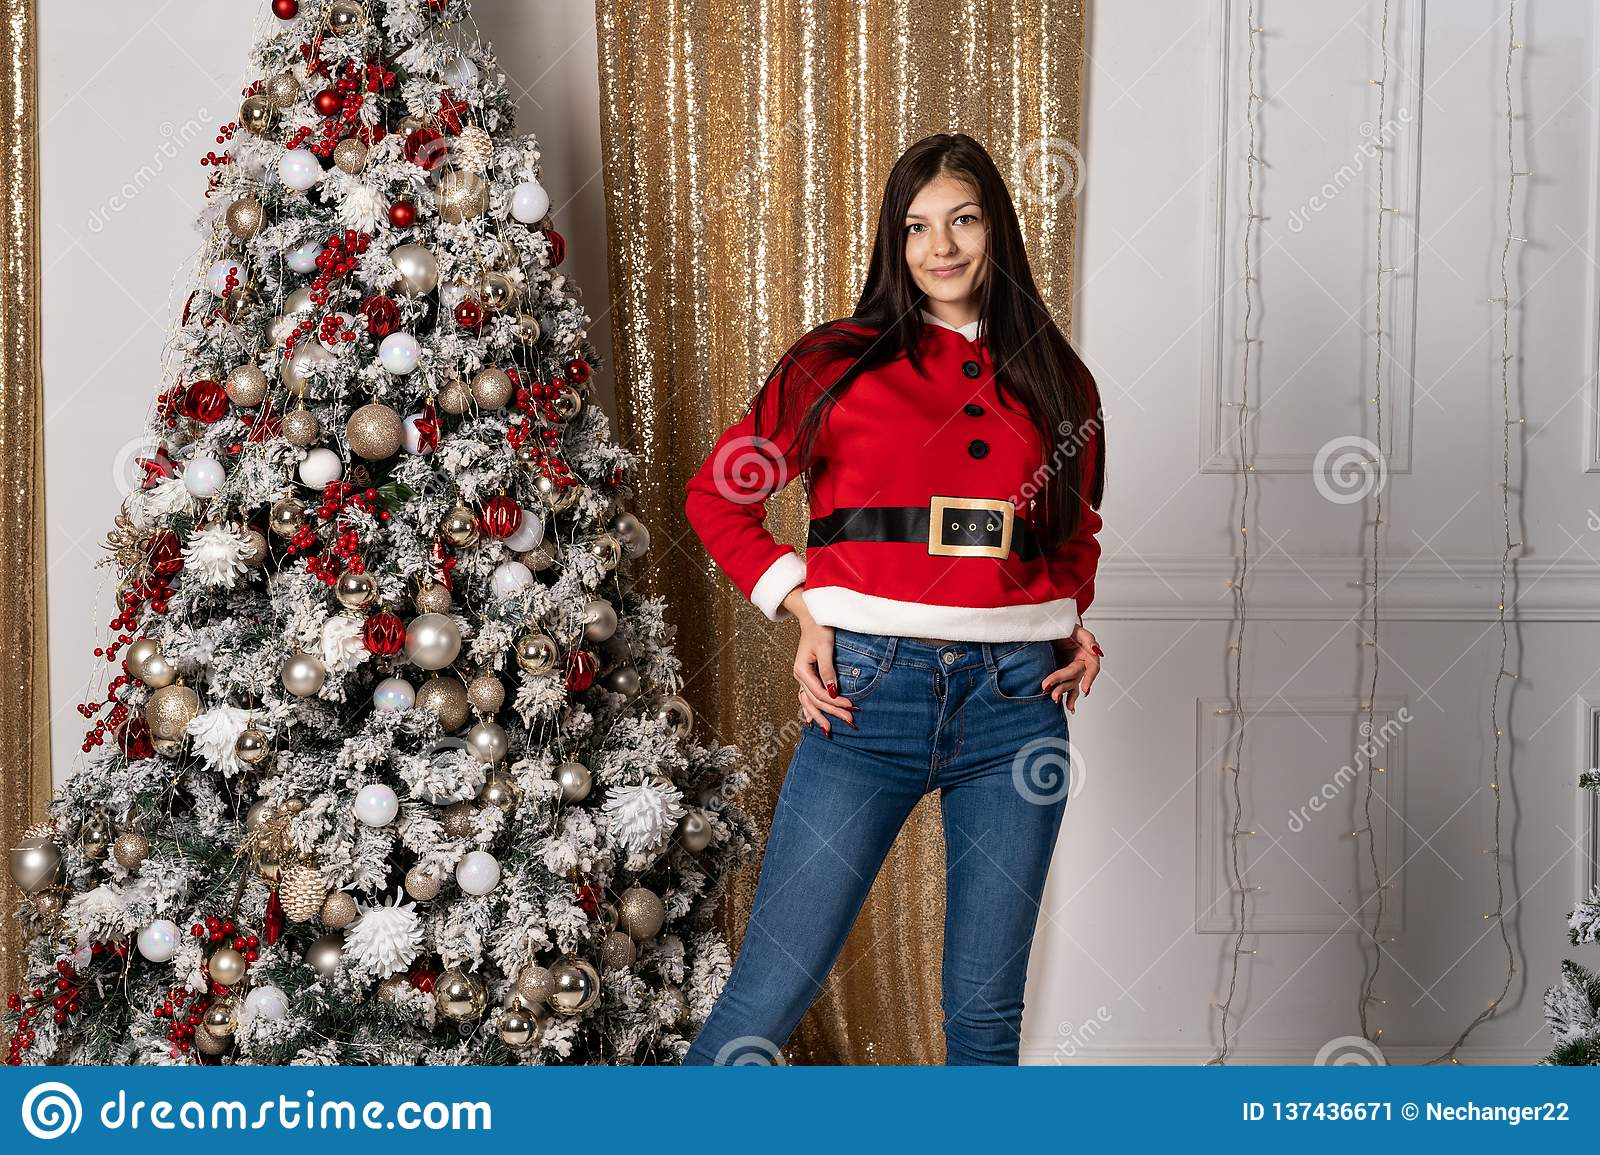 Beautiful girl in santa sweater after decorating the Christmas tree posing, looking at the camera